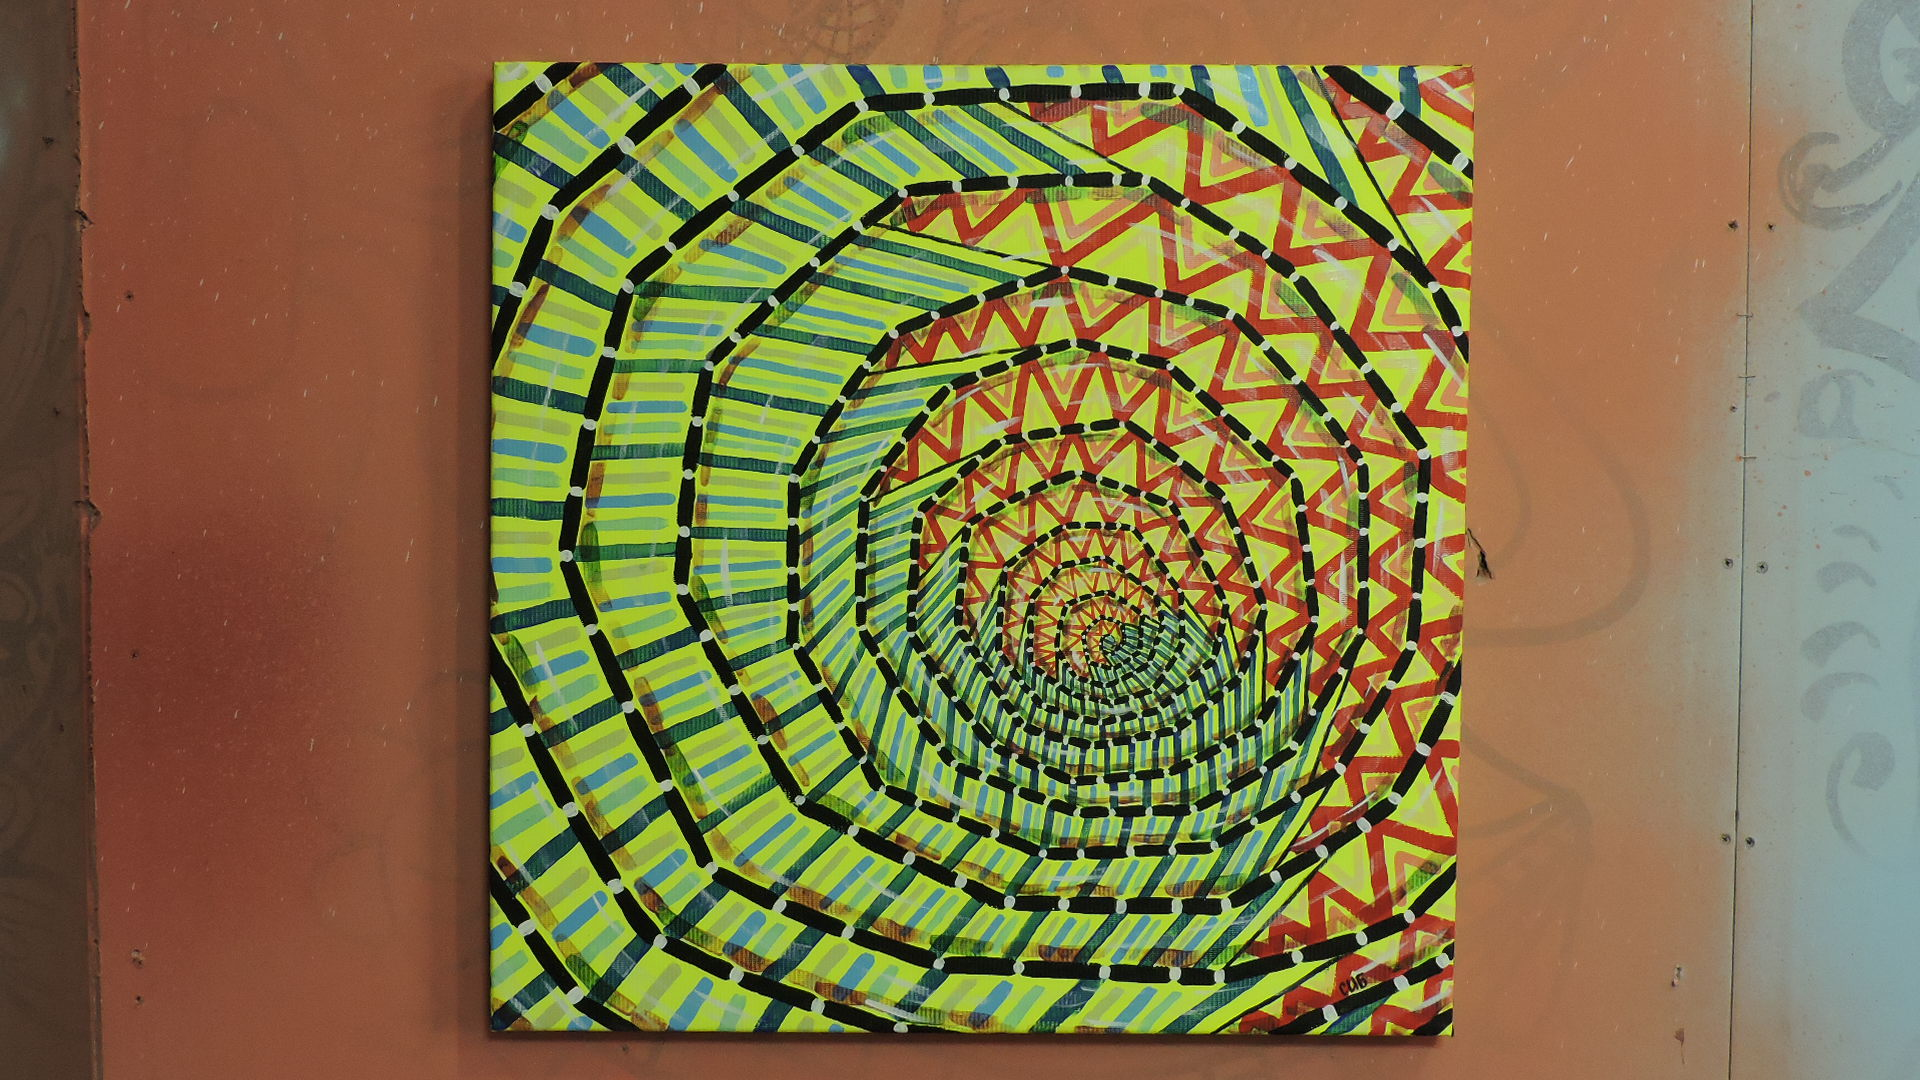 On the canvas painted a bright spiral on a fluorescent yellow background